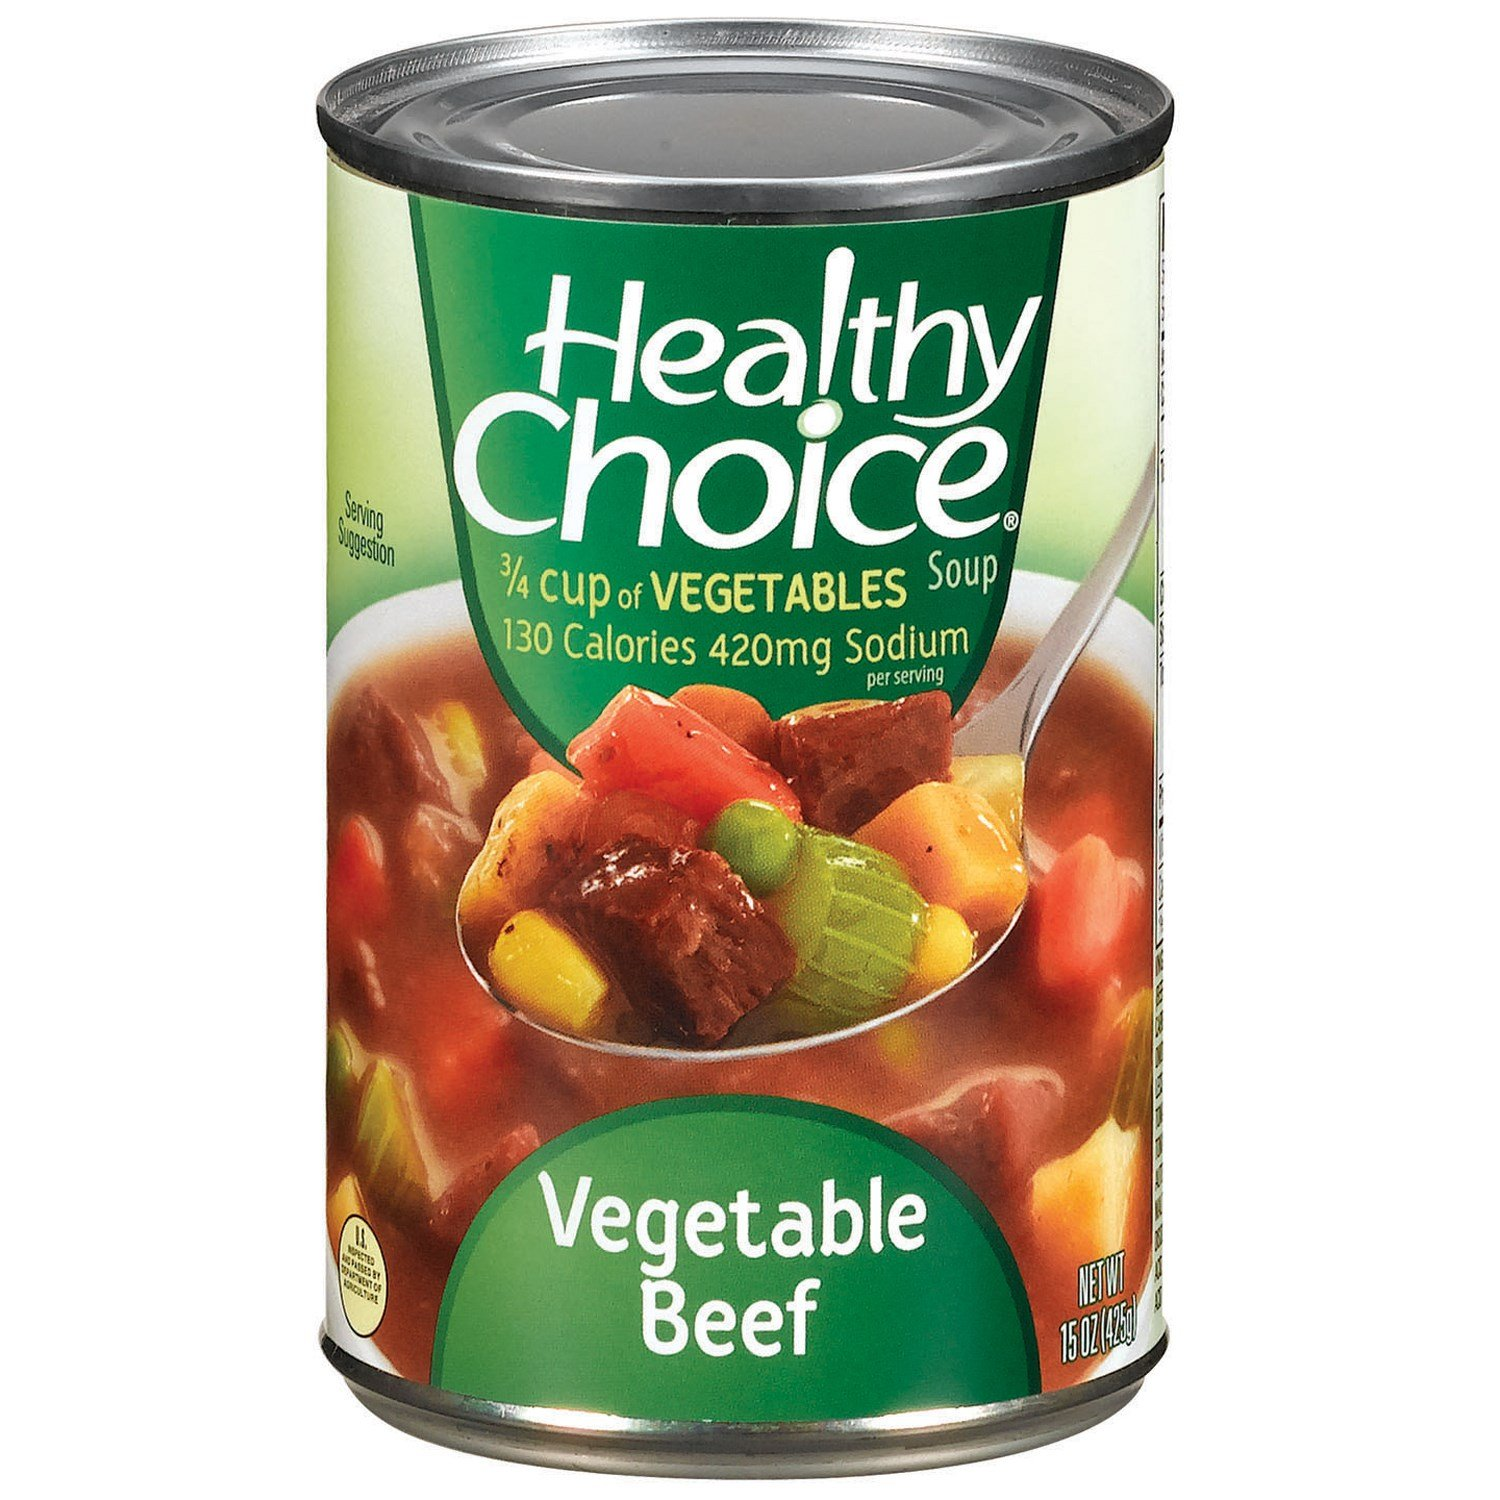 Healthy Choice Vegetable Beef Soup Cans 15OZ (Pack of 24) by Healthy Choice